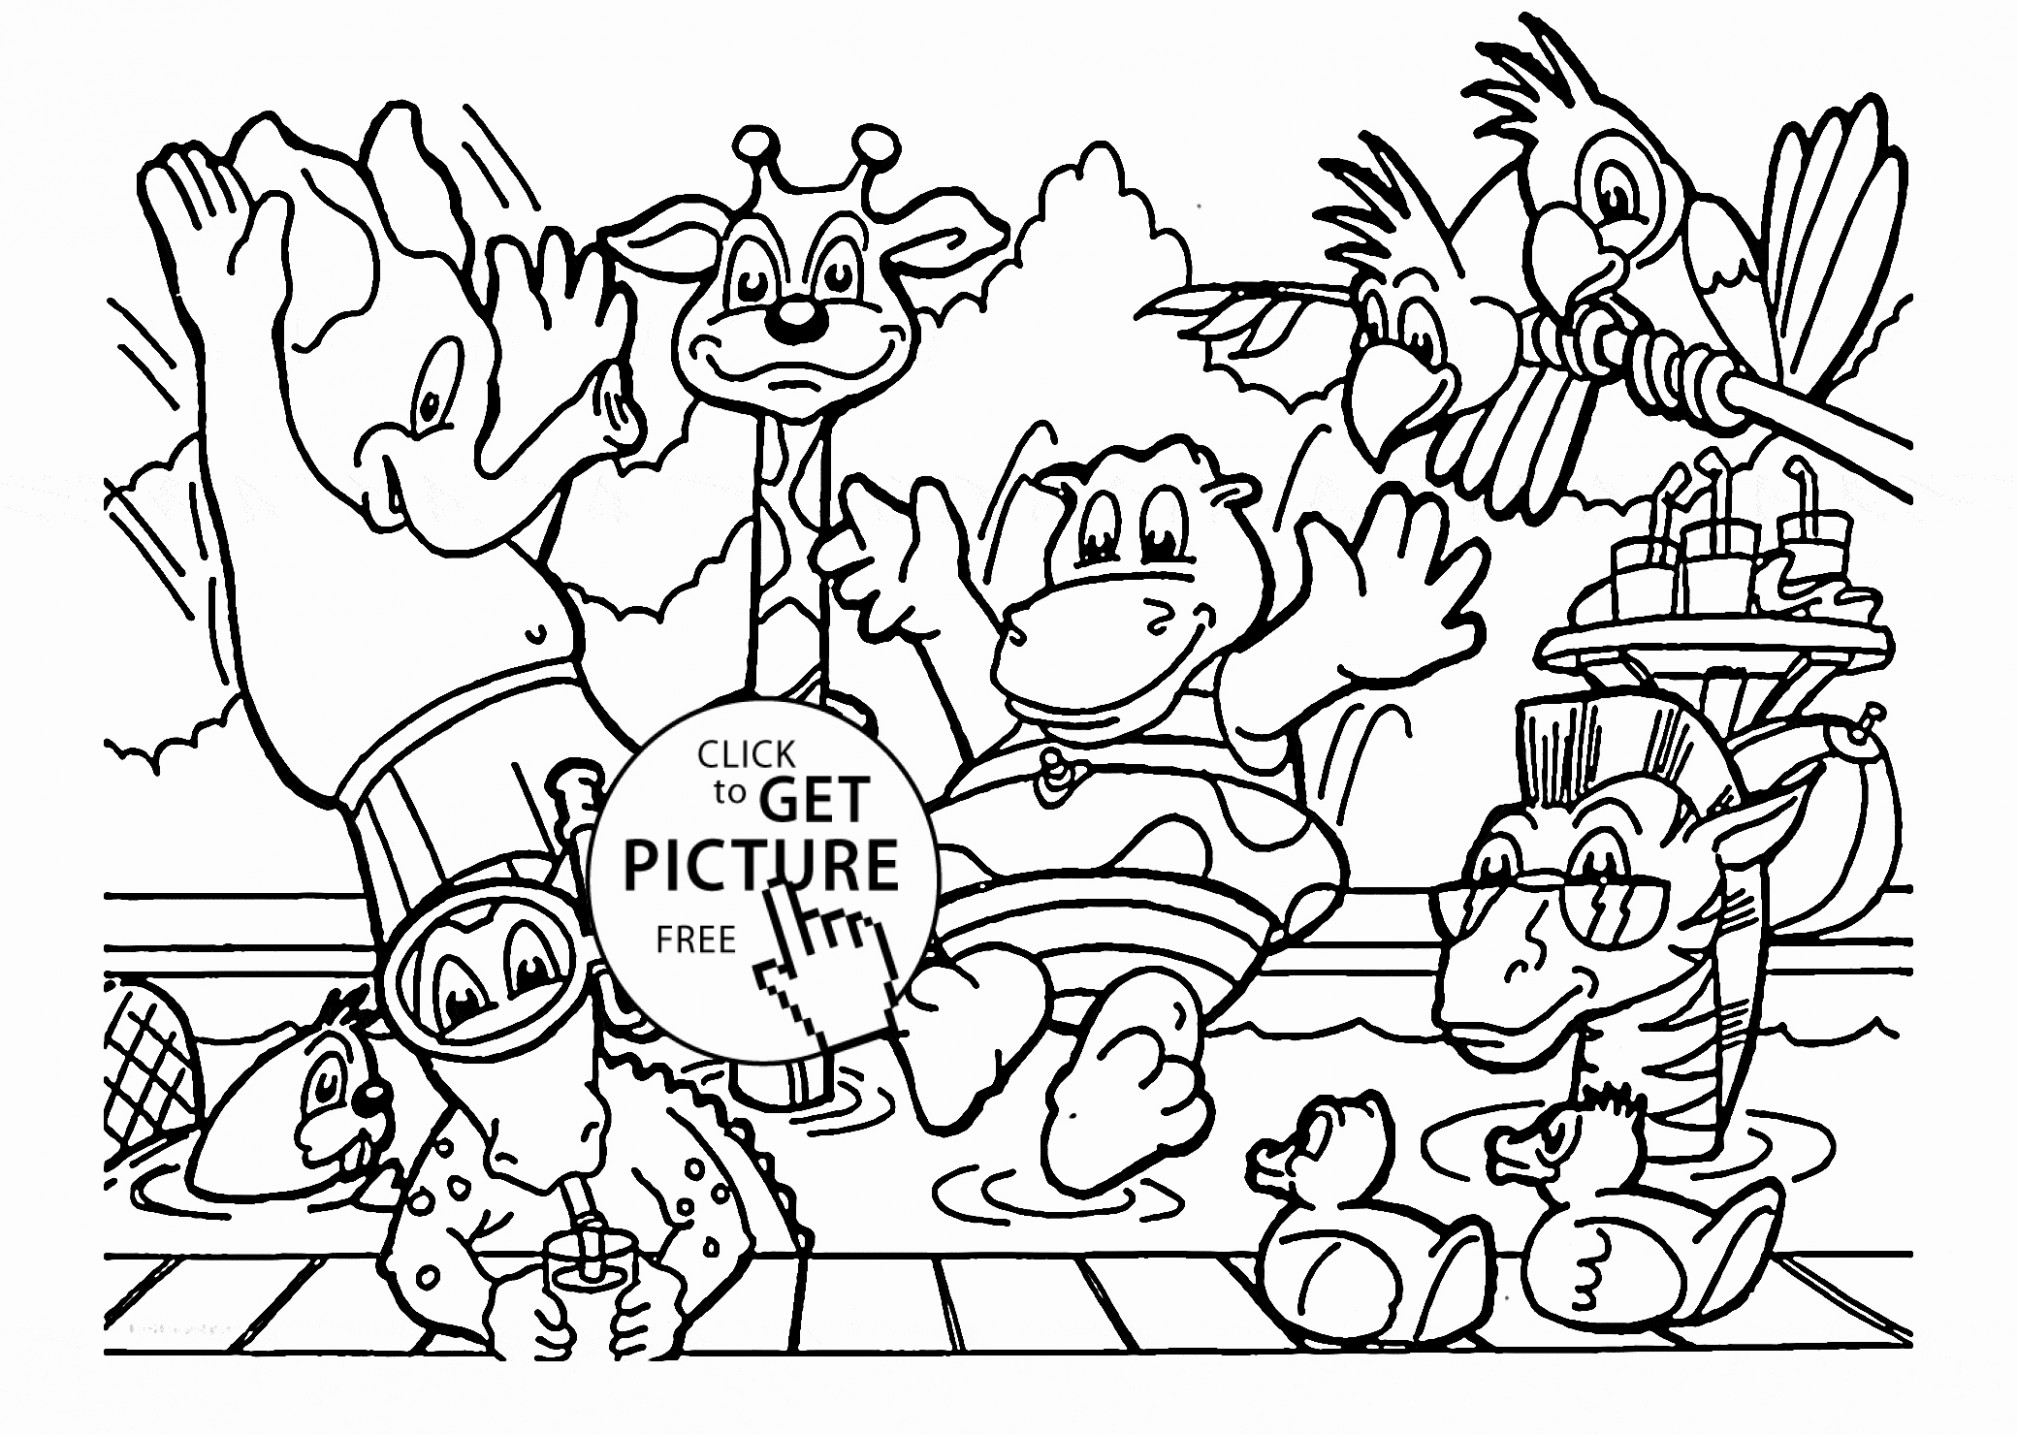 Zoo Coloring Pages Printable | Free Coloring Books – zoo coloring book printable